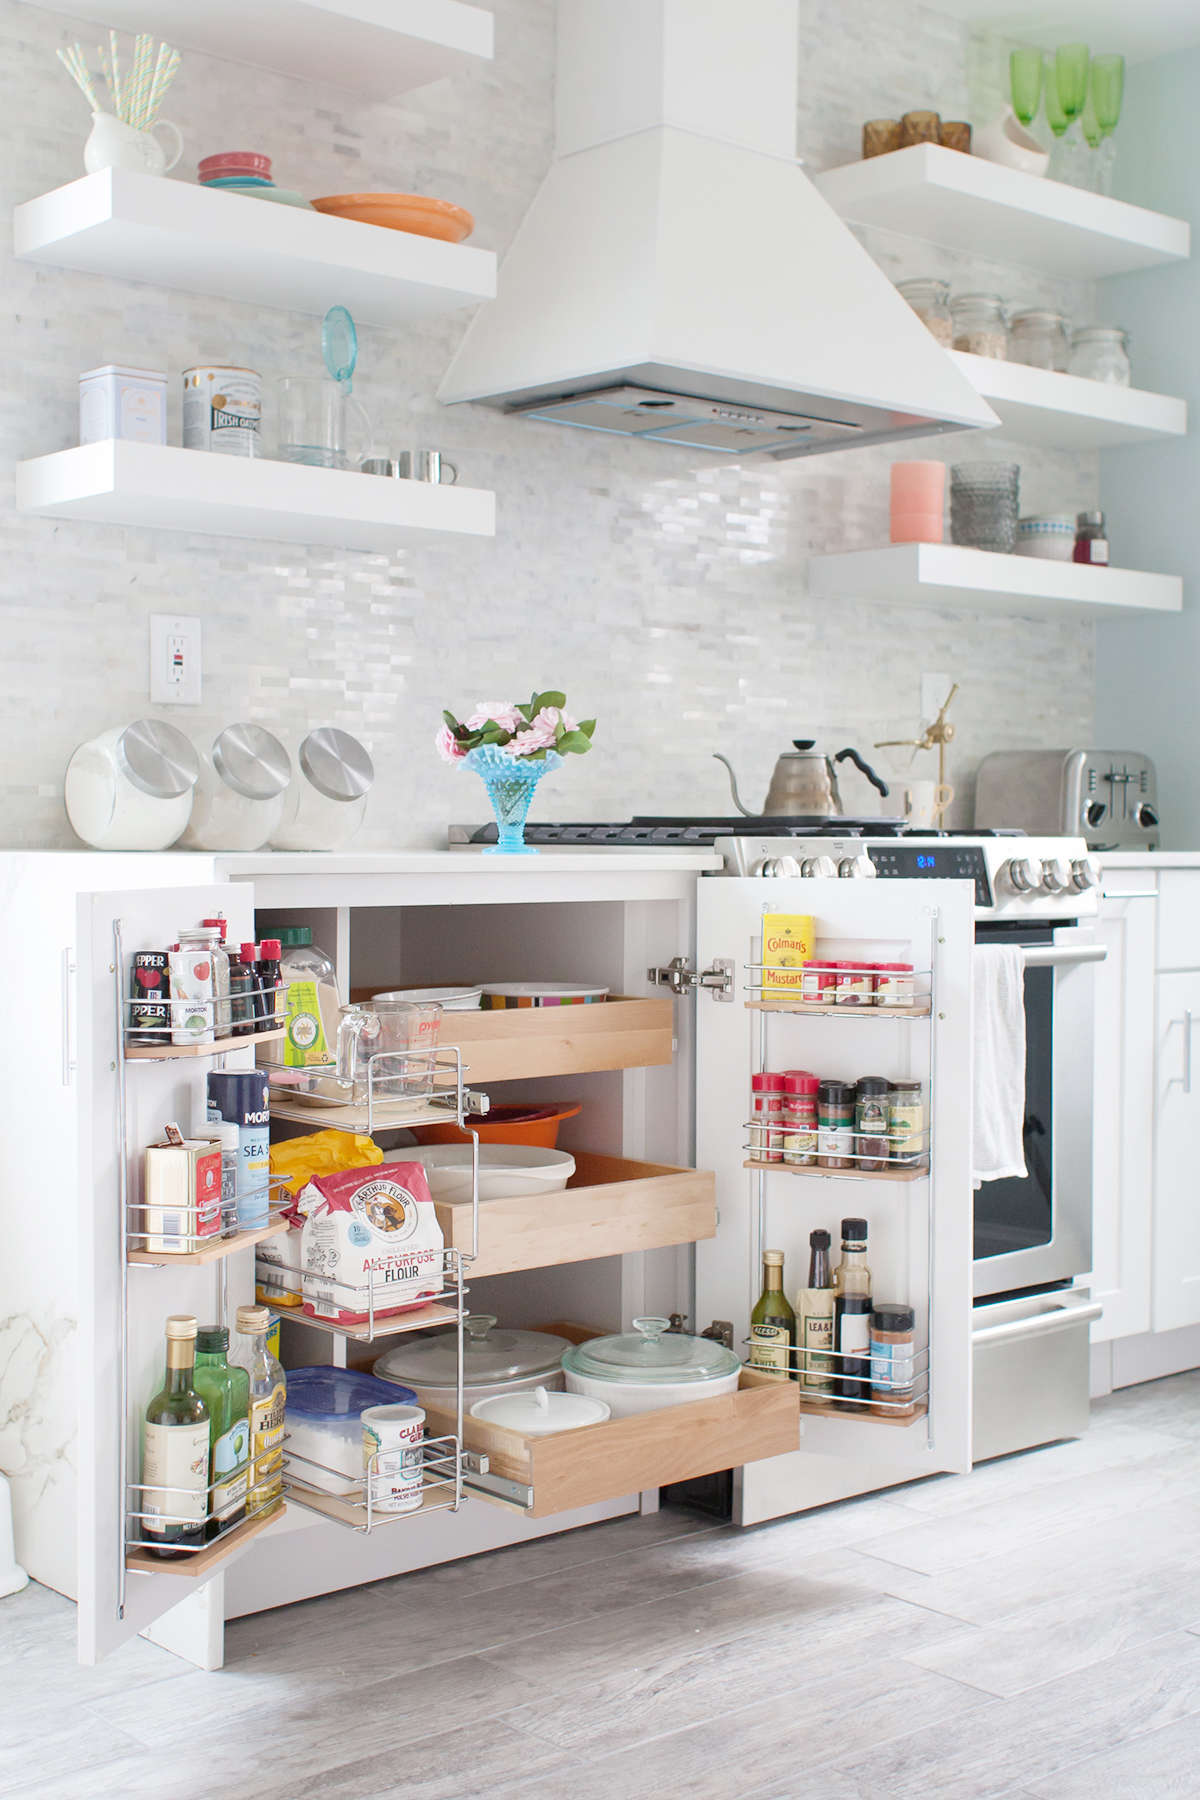 Our New Kitchen Reveal with the Home DepotLay Baby Lay Lay Baby Lay